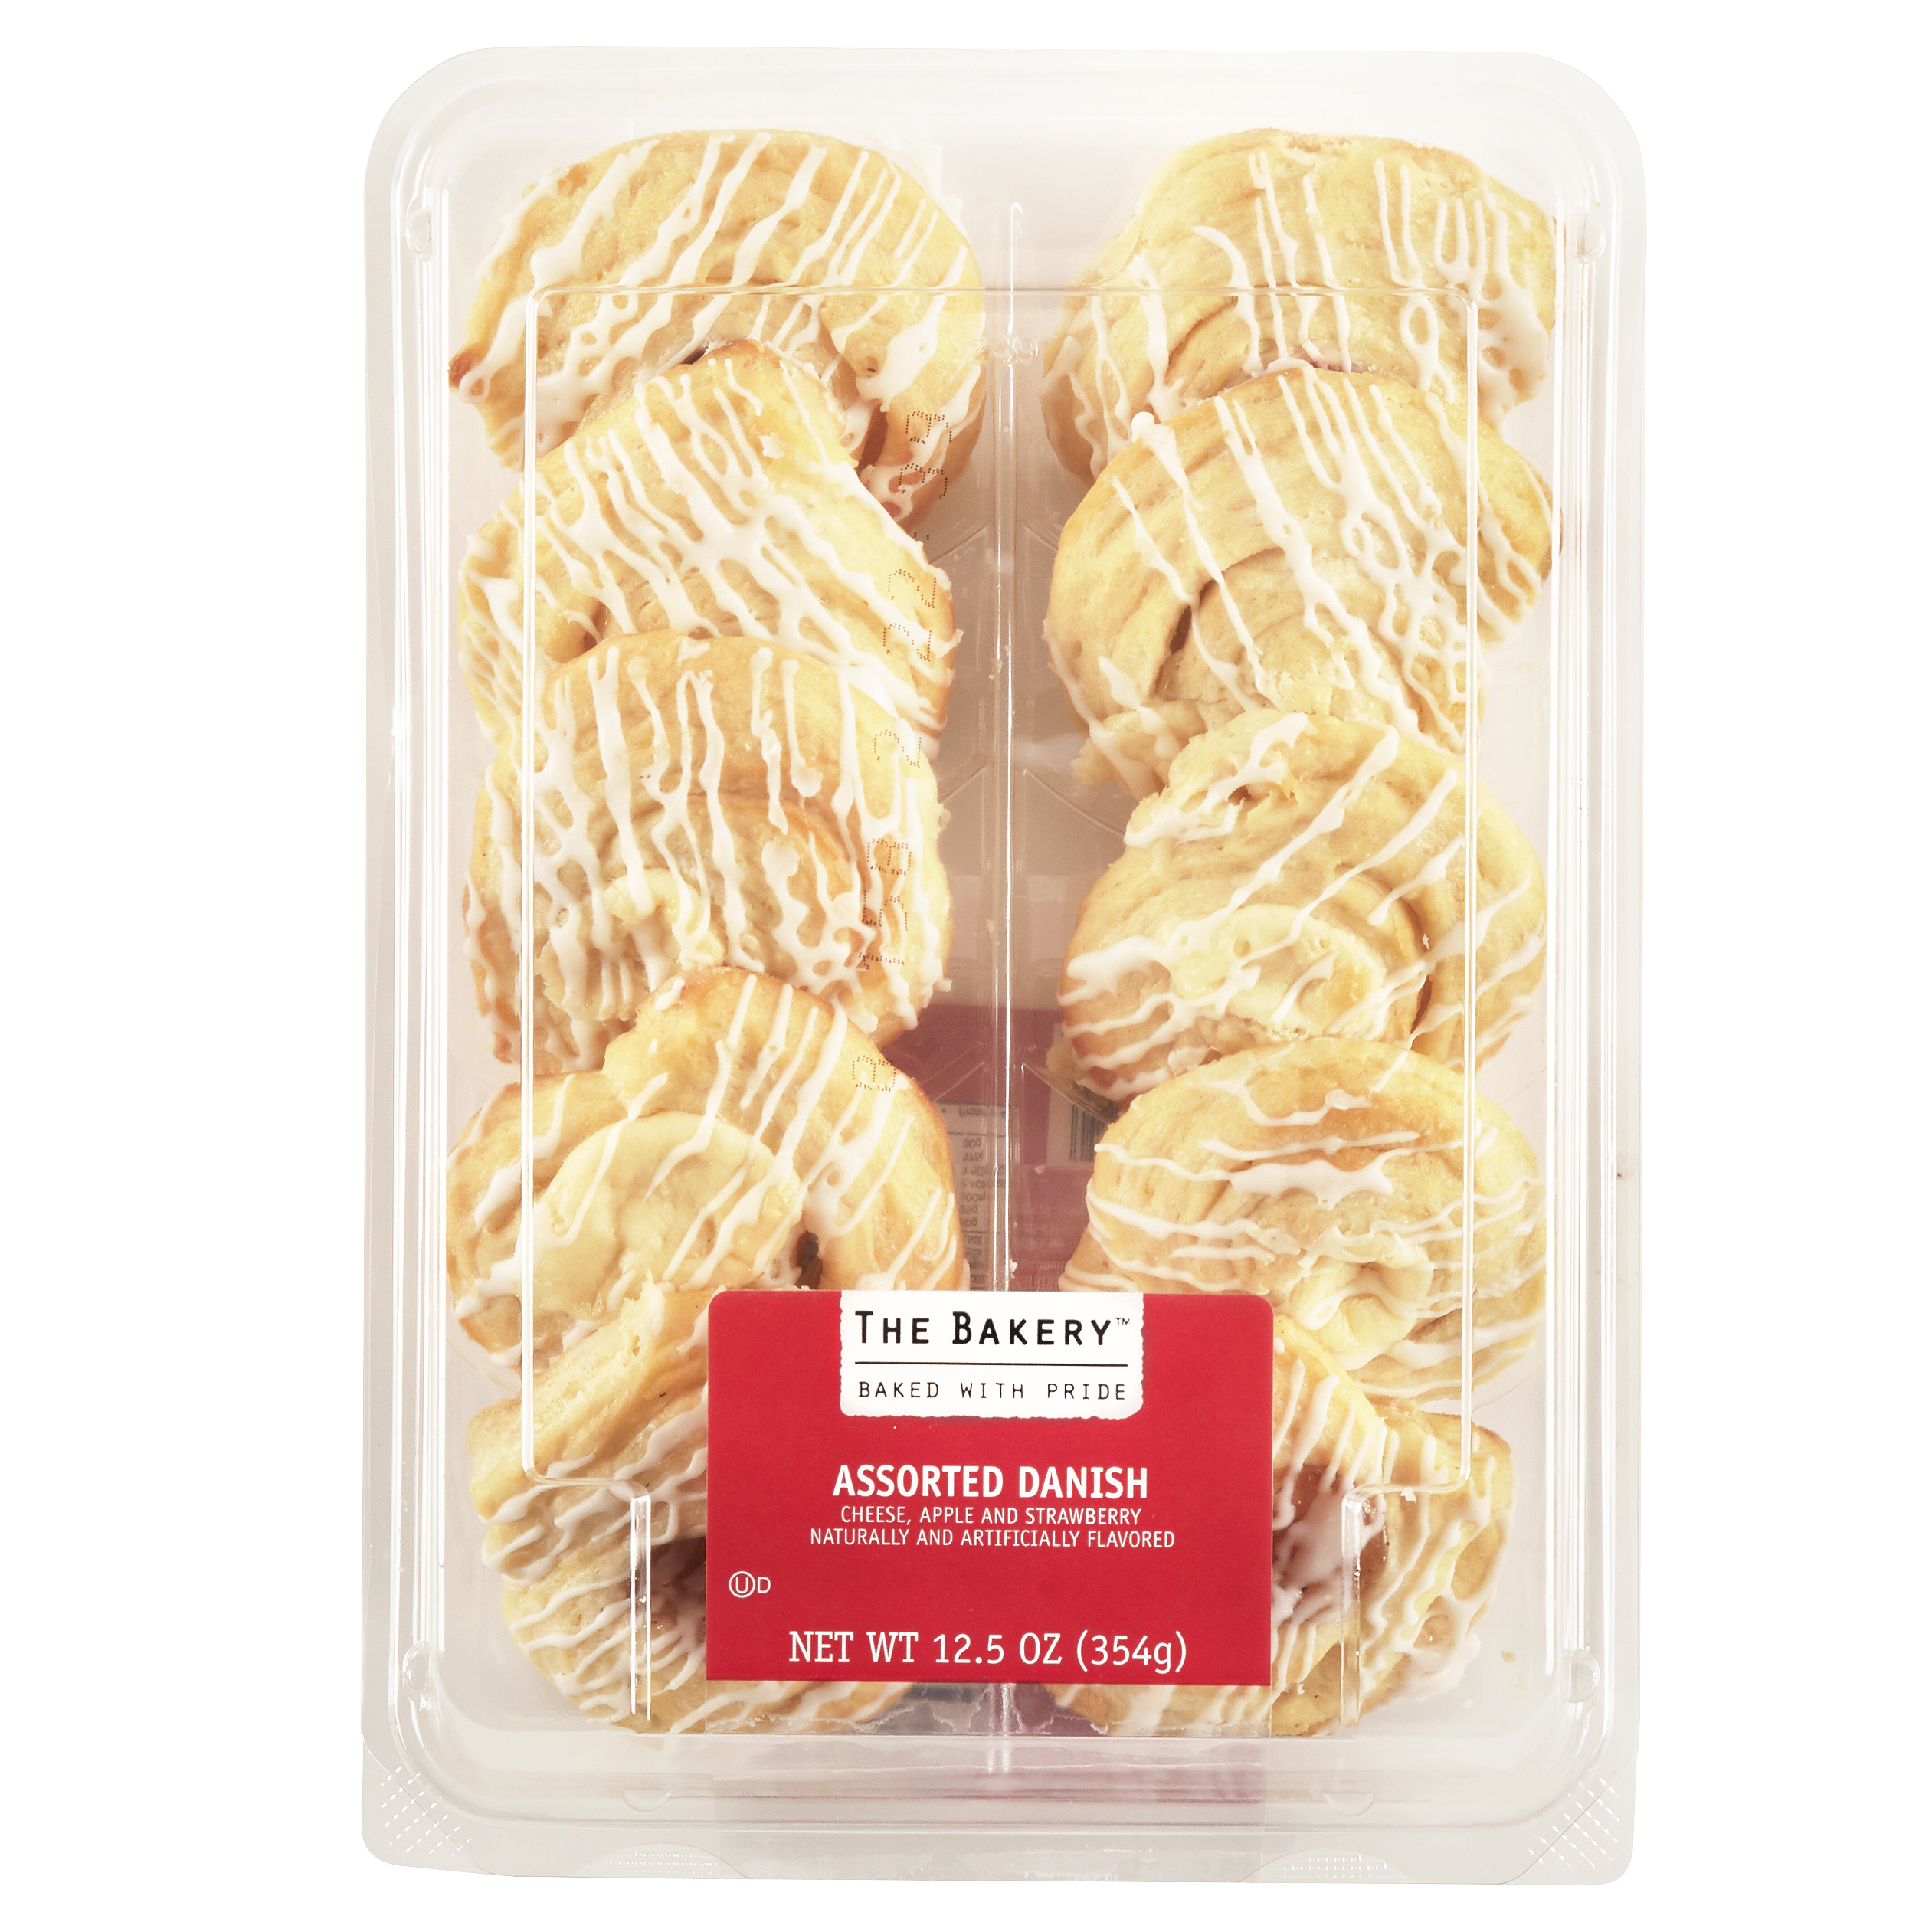 Freshness Guaranteed Assorted Danish, 12.5 oz, 10 Count